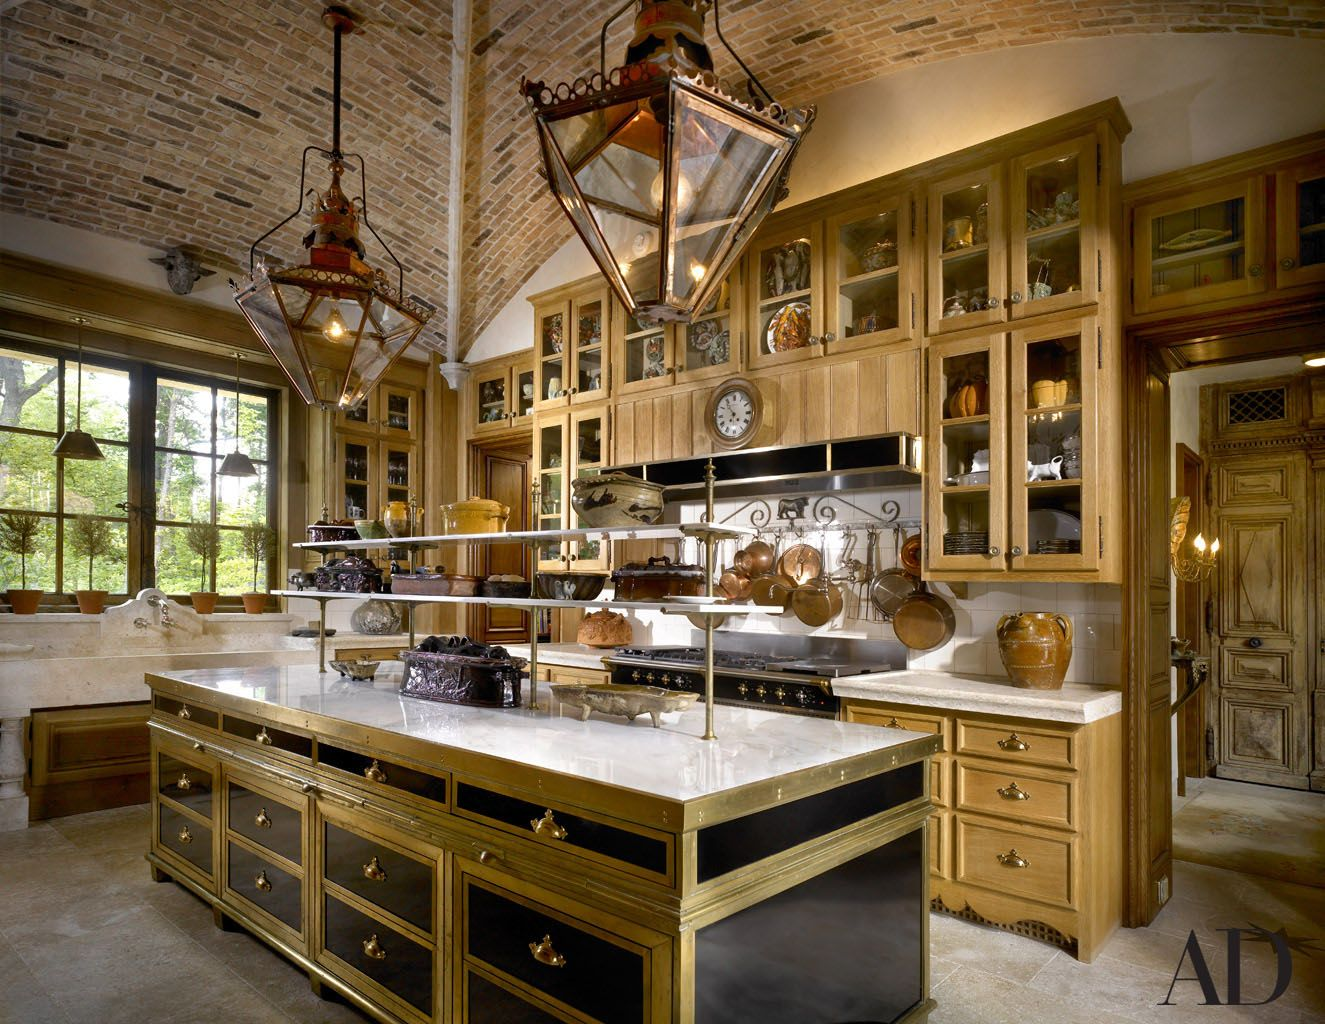 european kitchen inside robin buxbaum s lake forest il home interiors french country on kitchen interior french country id=77777